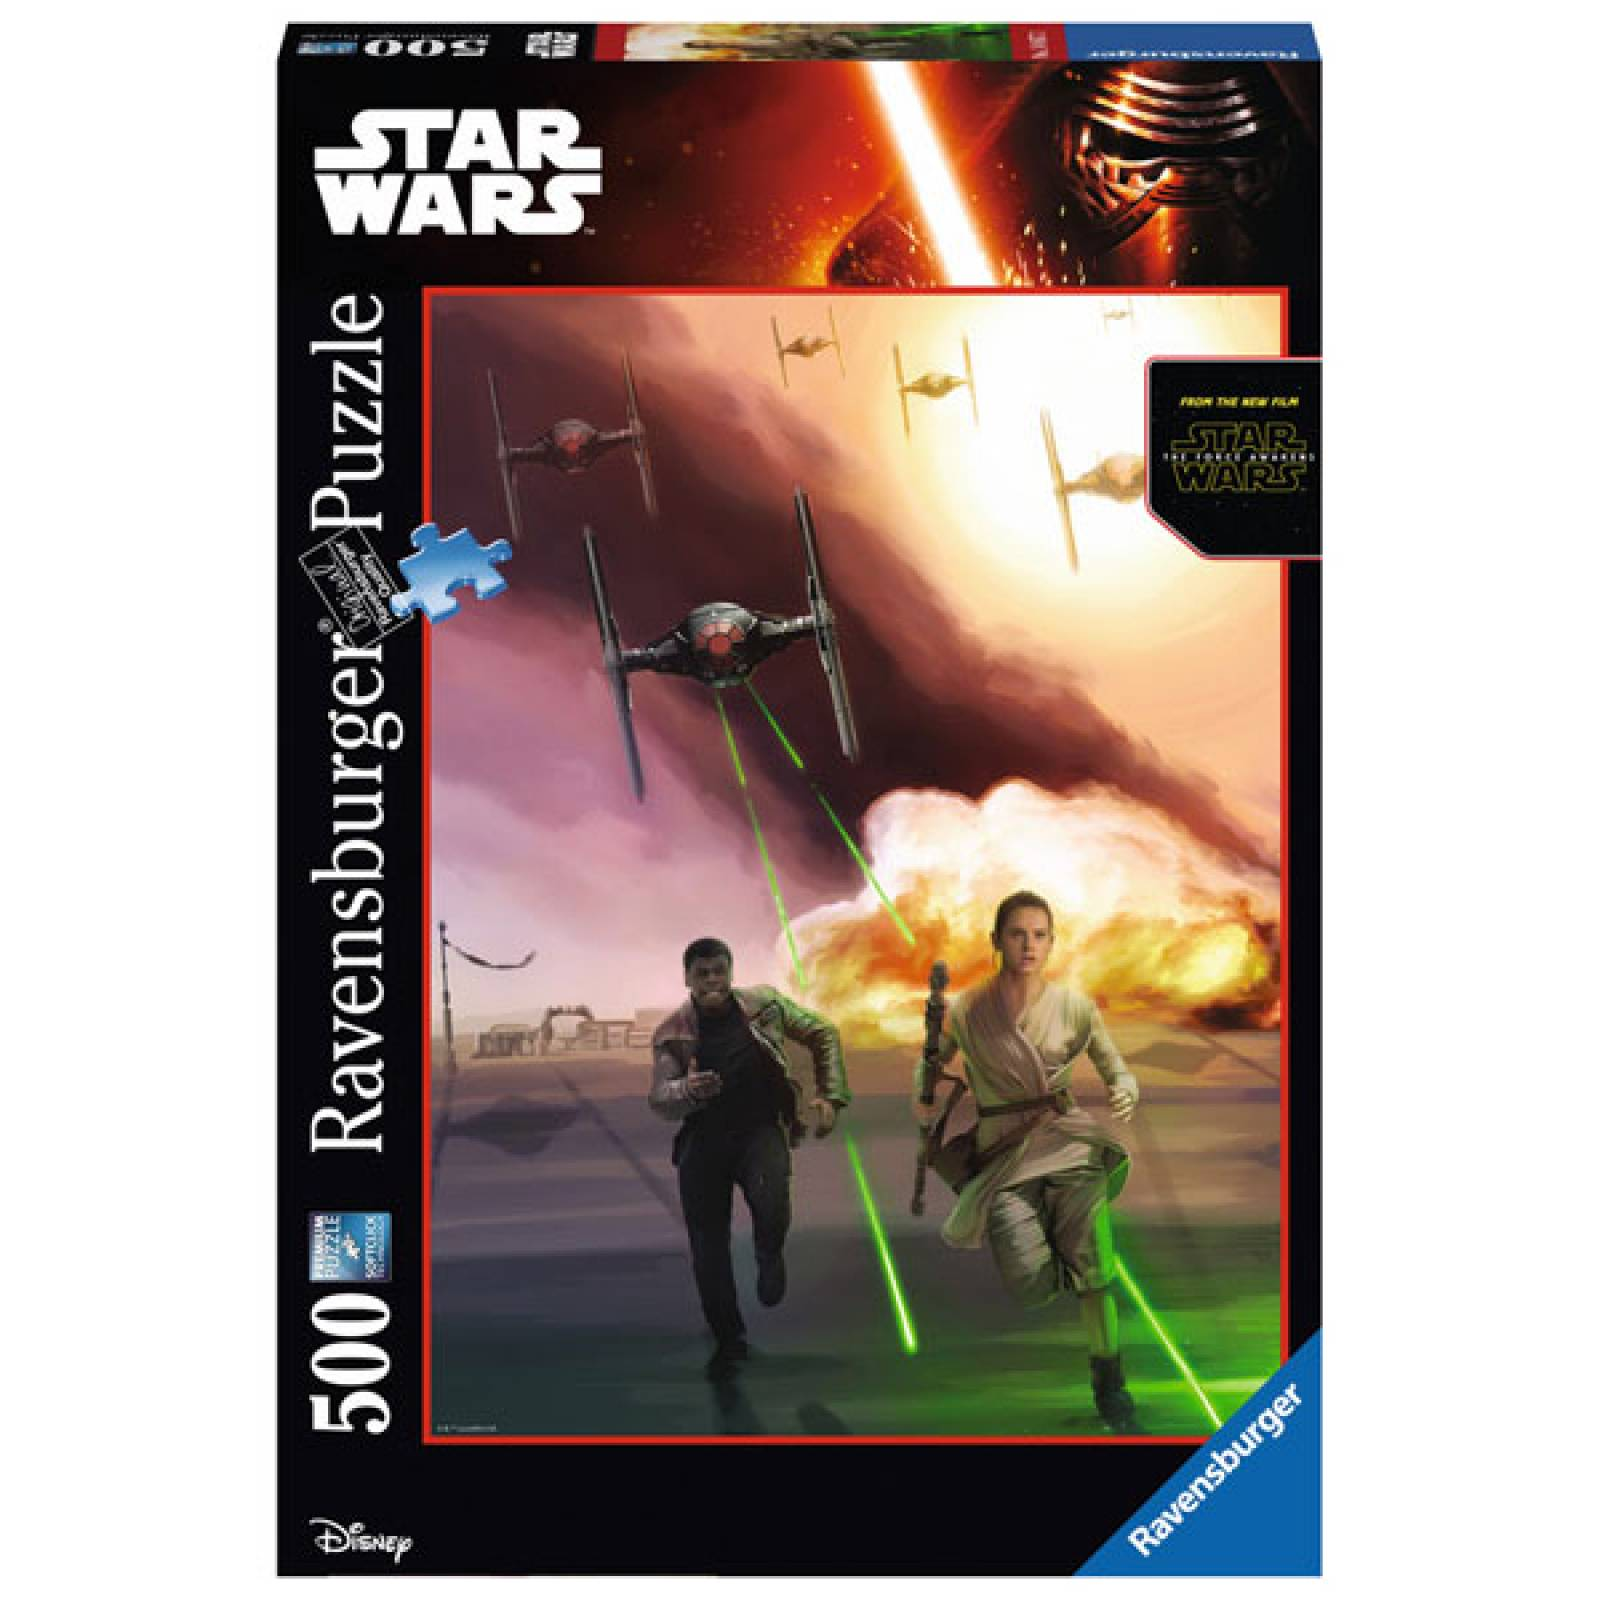 Star Wars The Force Awakens Jigsaw Puzzle 500pc